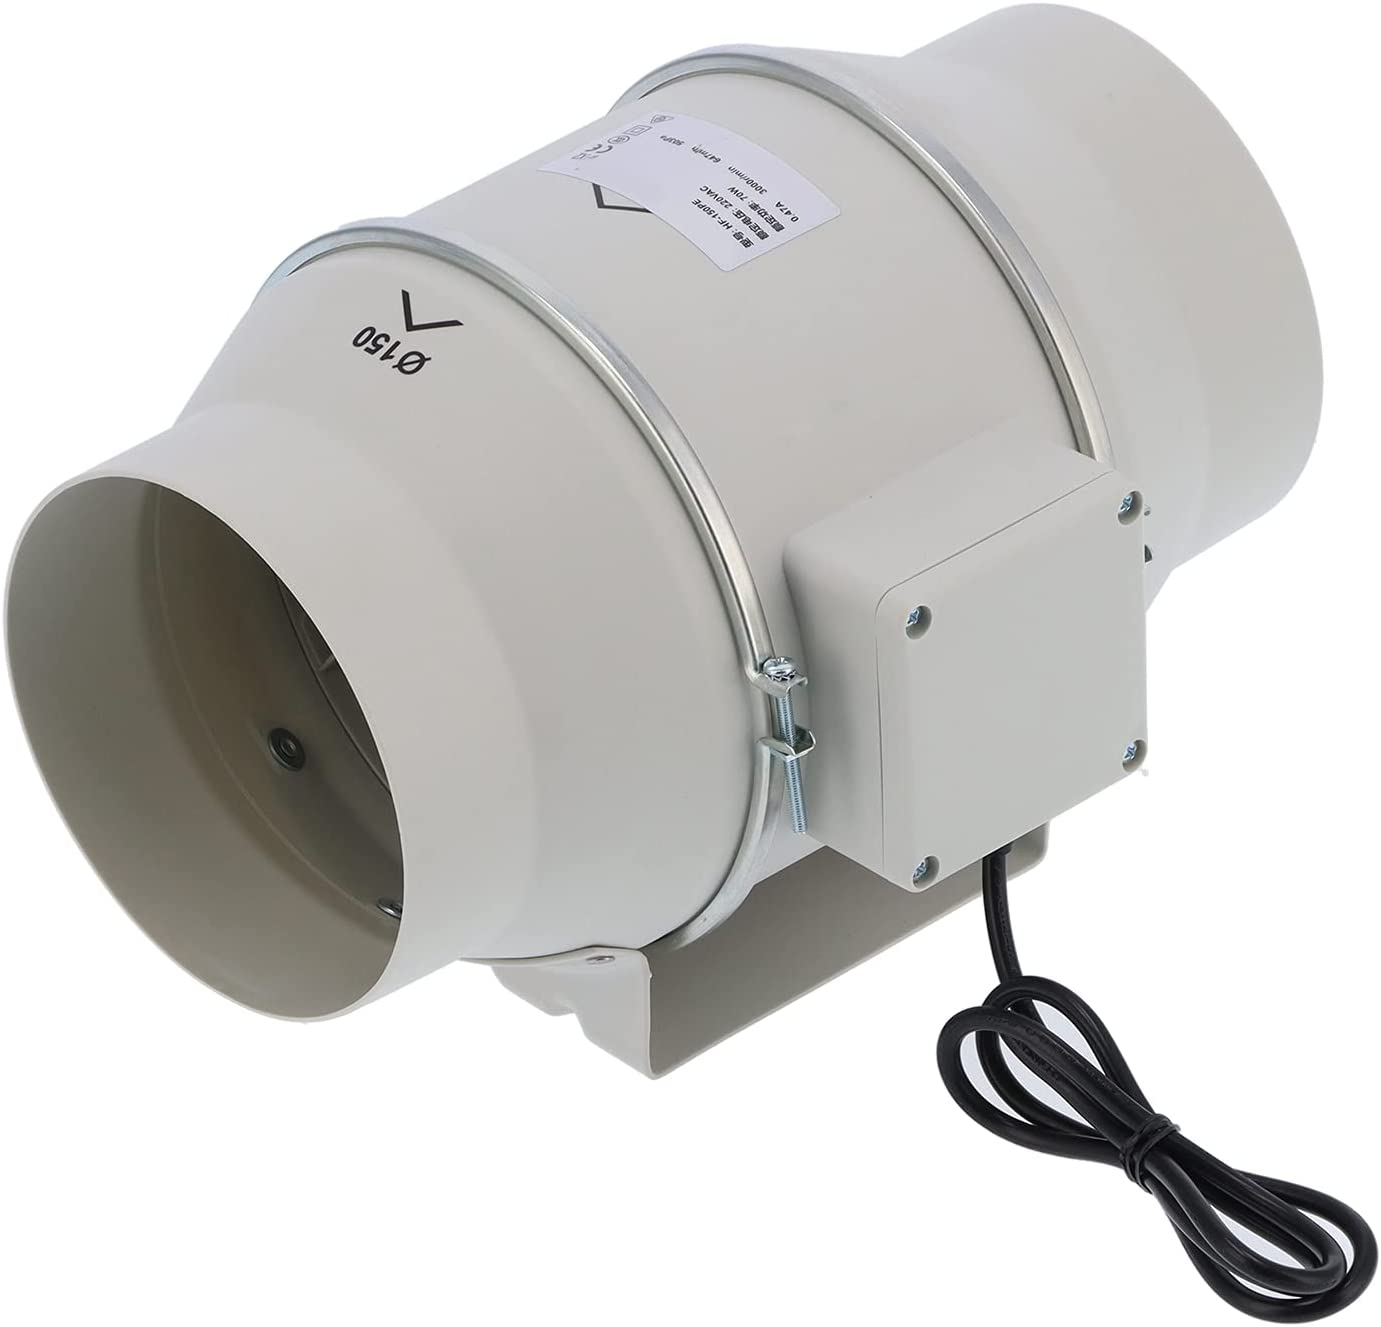 Luroze Exhaust Ventilation Fan Inline Duct -20℃ 60à Max 55% OFF 2021 new to